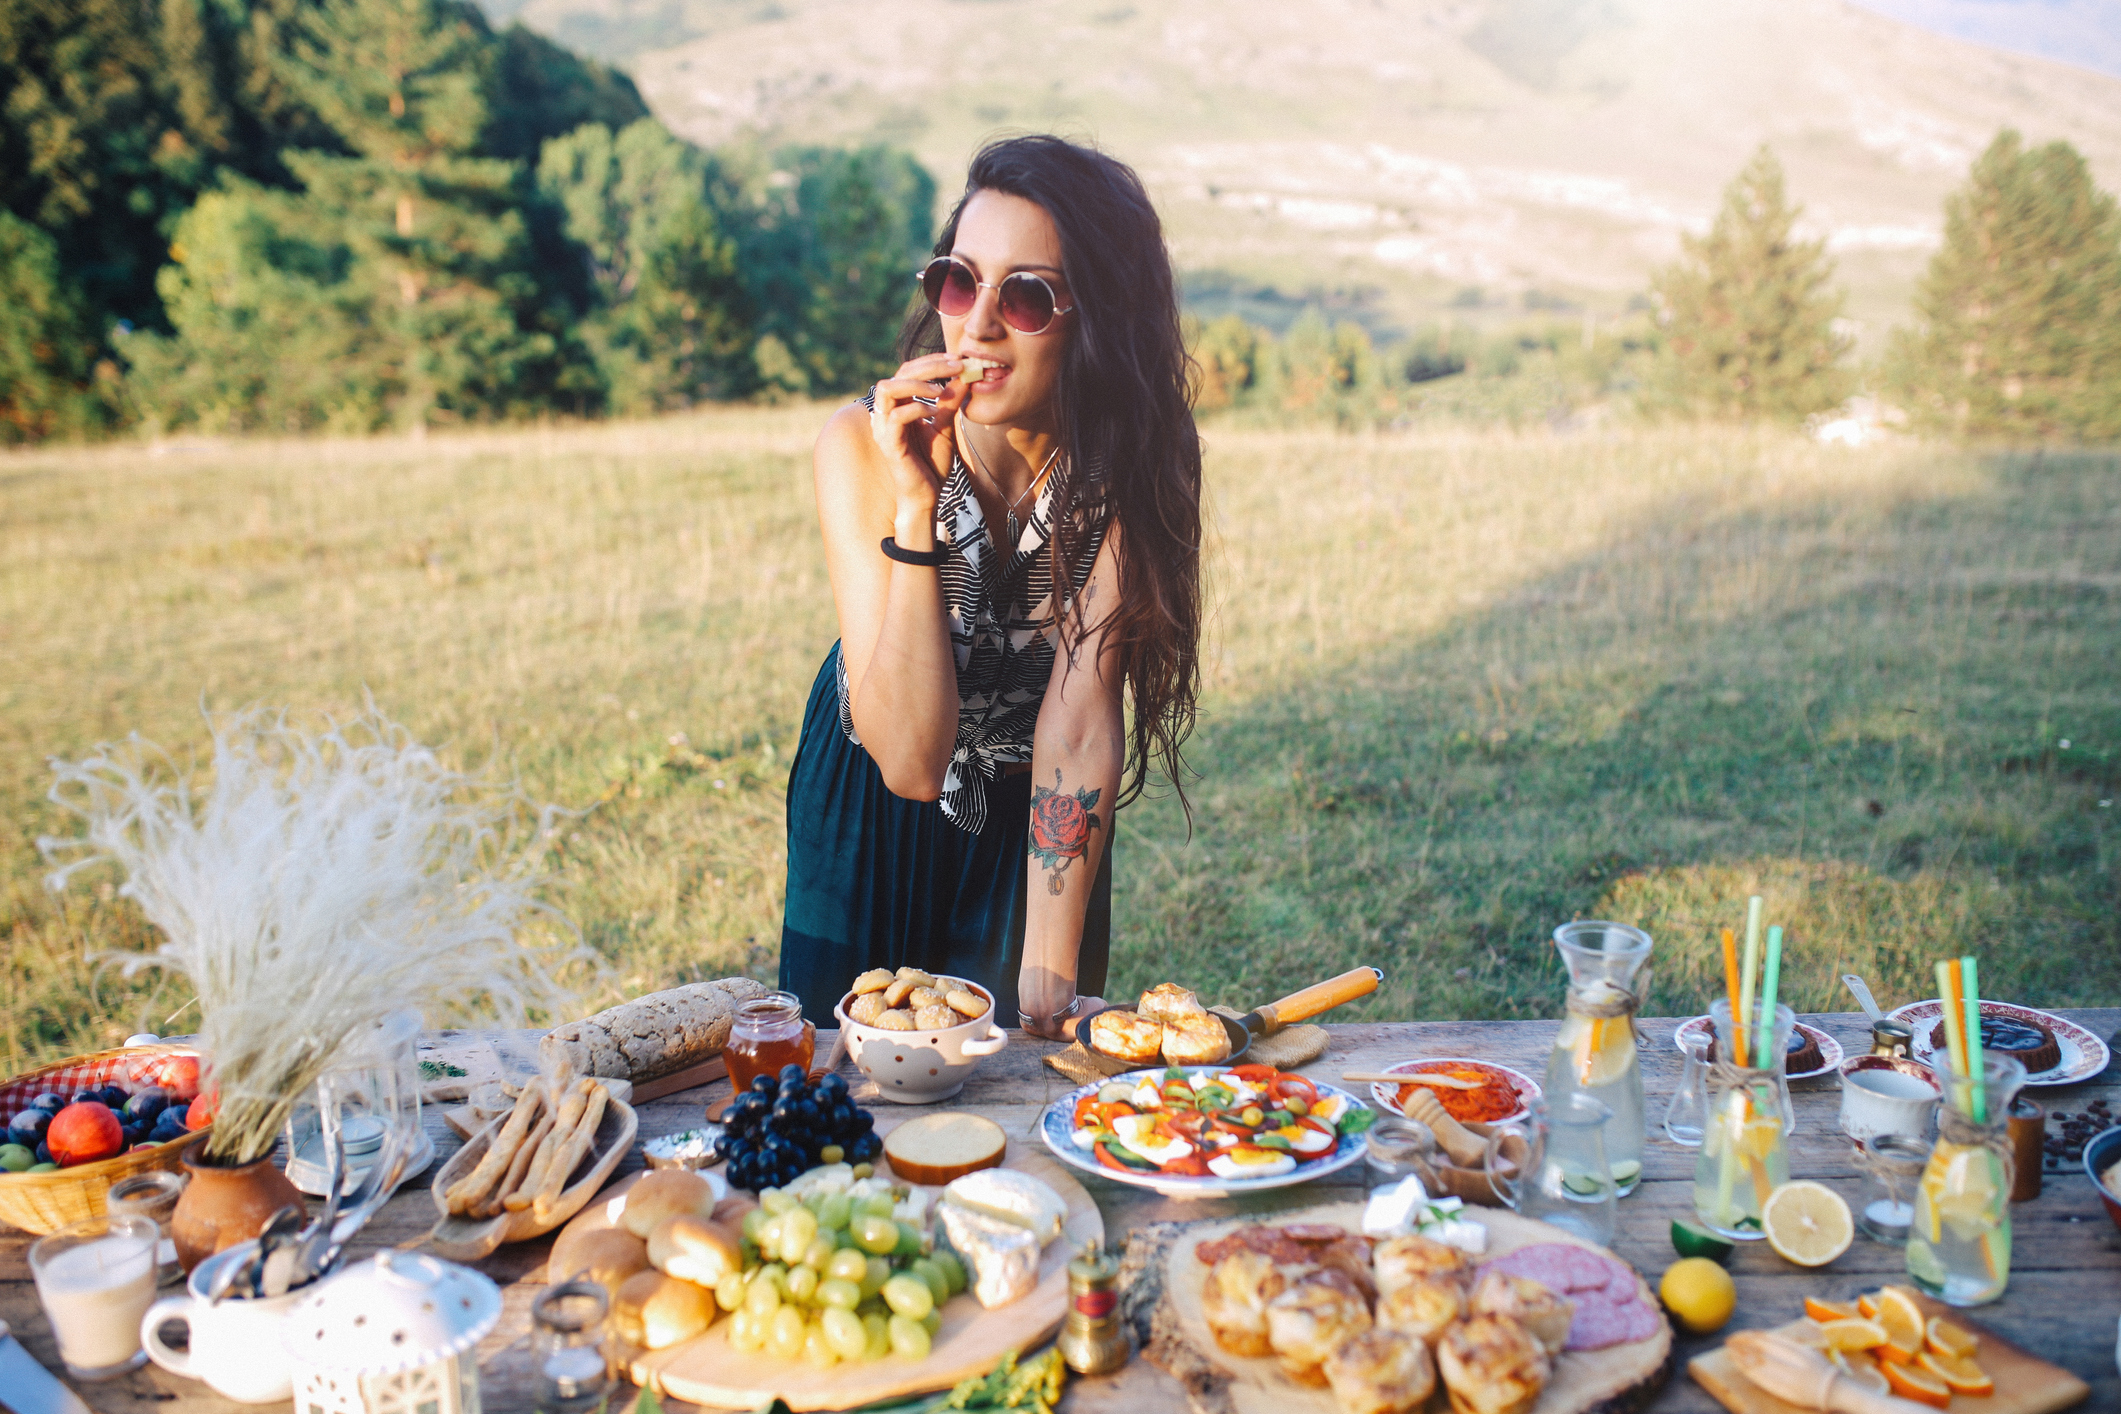 Young woman preparing food for picnic day in the countryside. Various foods on an old, rustic, wooden table.